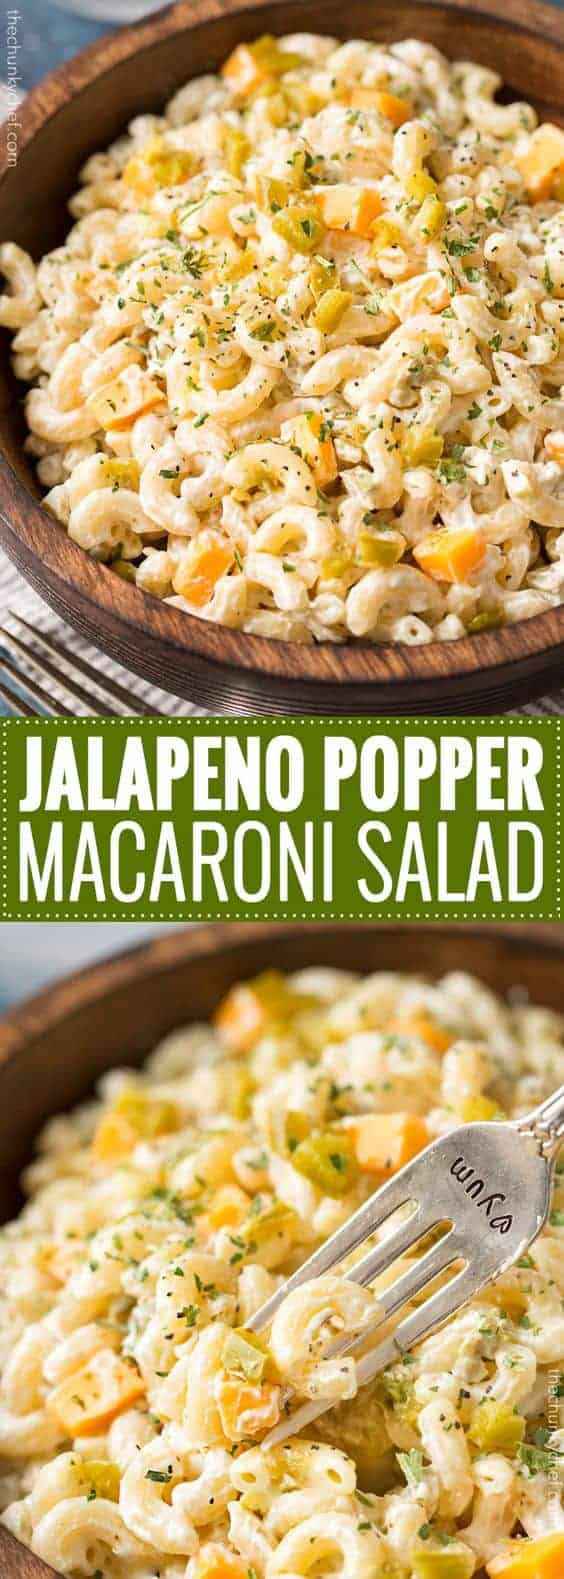 Jalapeno Popper Macaroni Salad by Cucina De Yung | Pasta Salad recipes that you will want to make this summer!